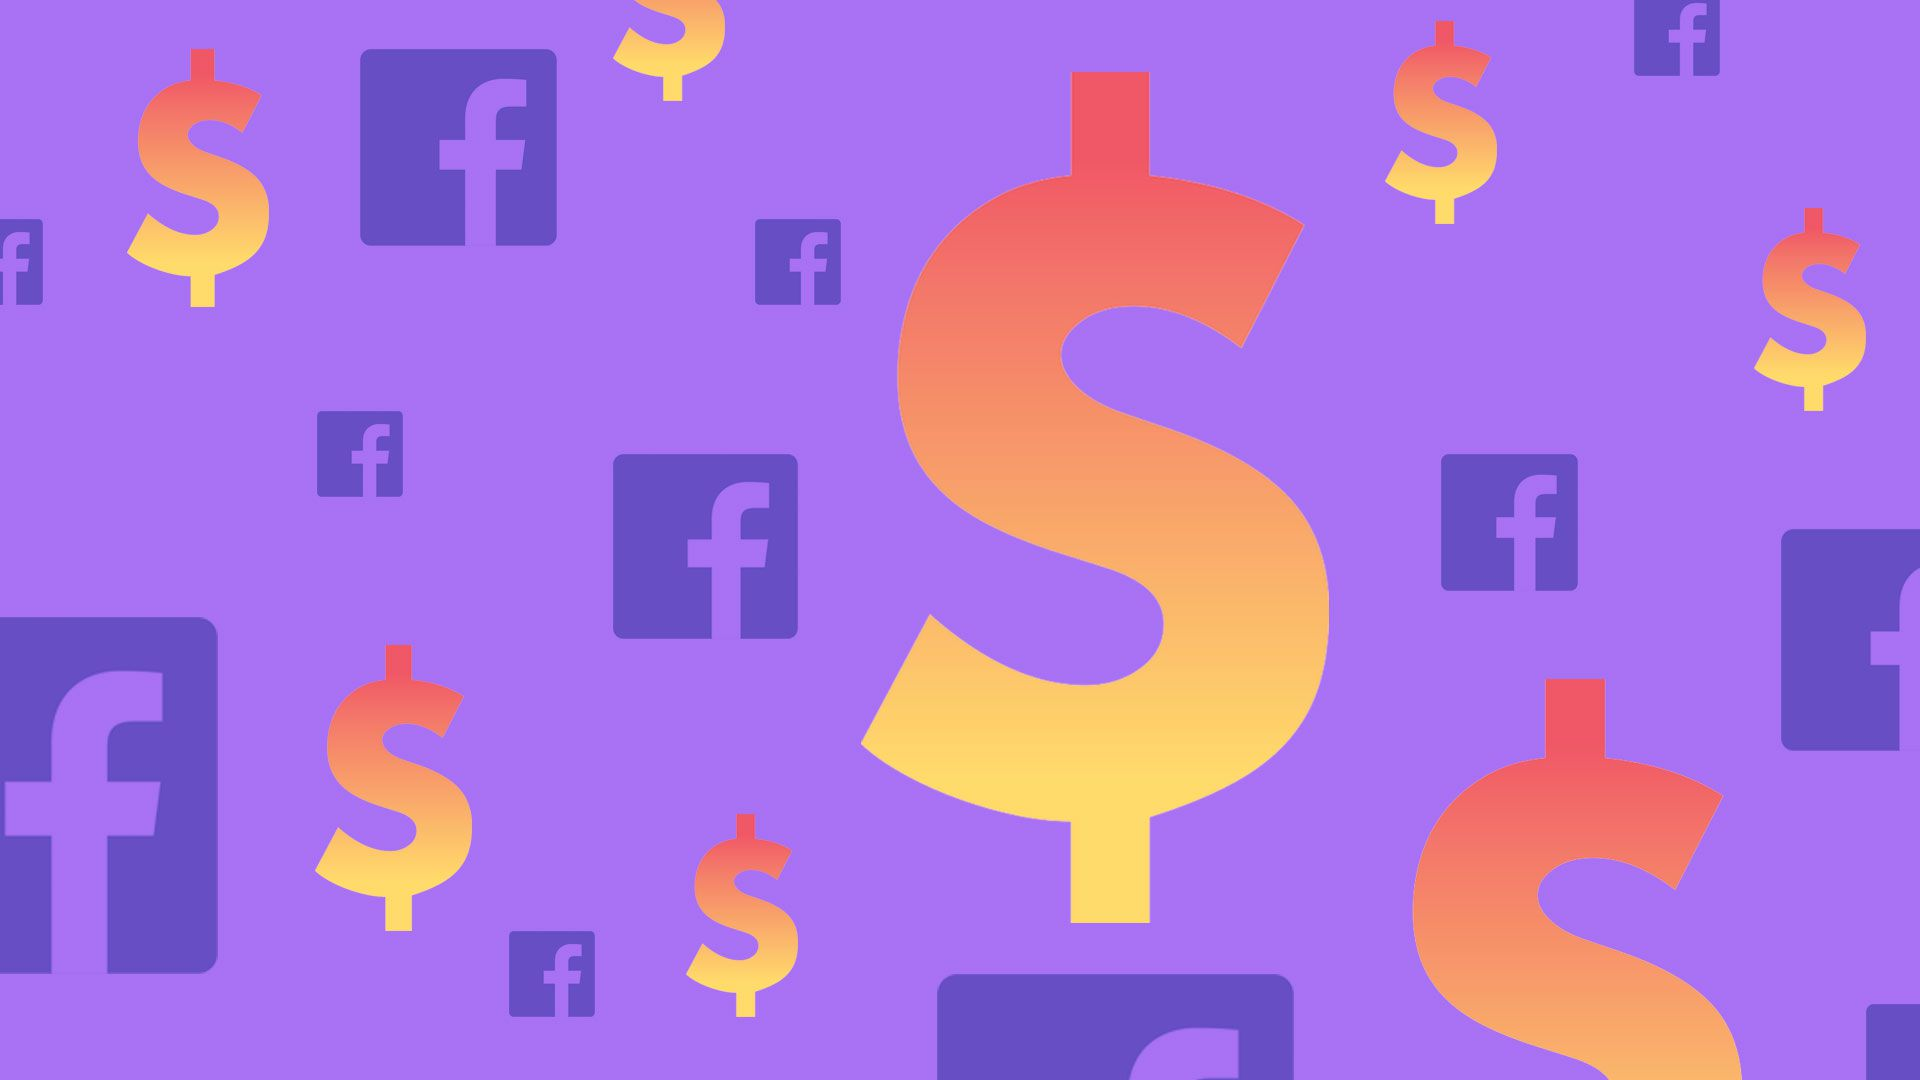 An abstract field of currency symbols and facebook logos